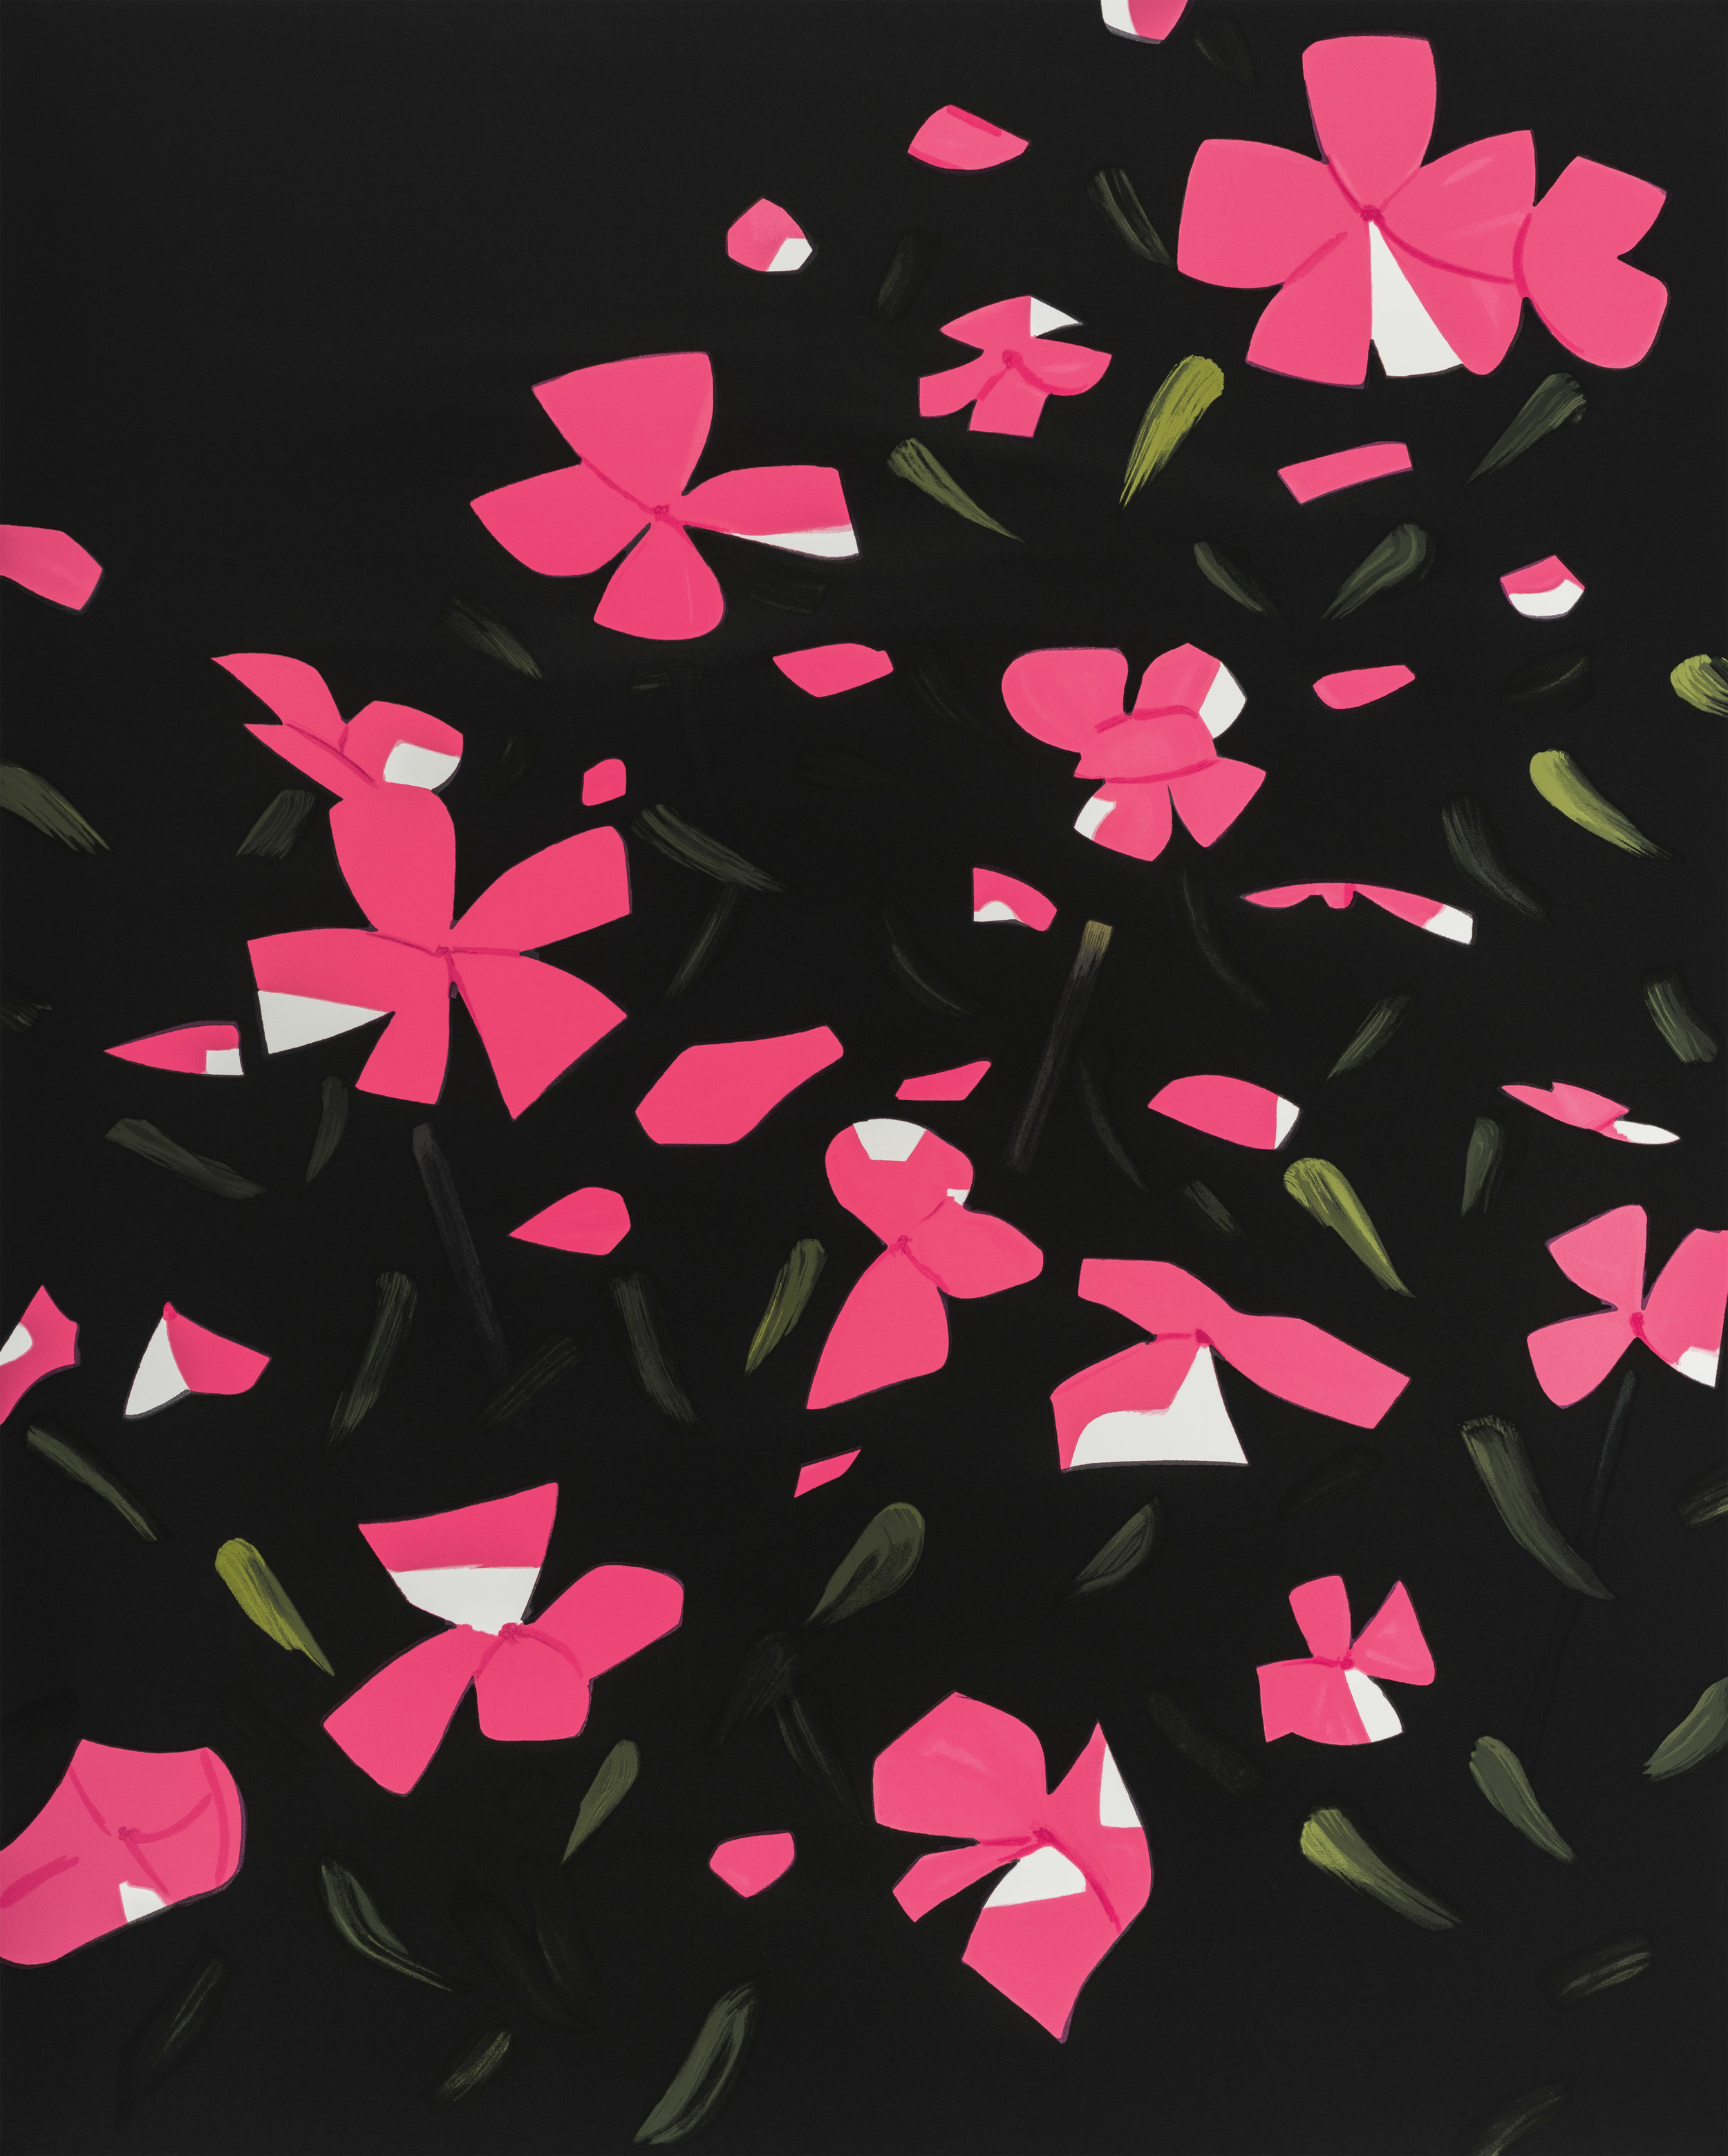 Alex Katz  White Impatiens , 2016 26-color silkscreen on Saunders 425 gsm paper 70 x 56 in. edition of 70